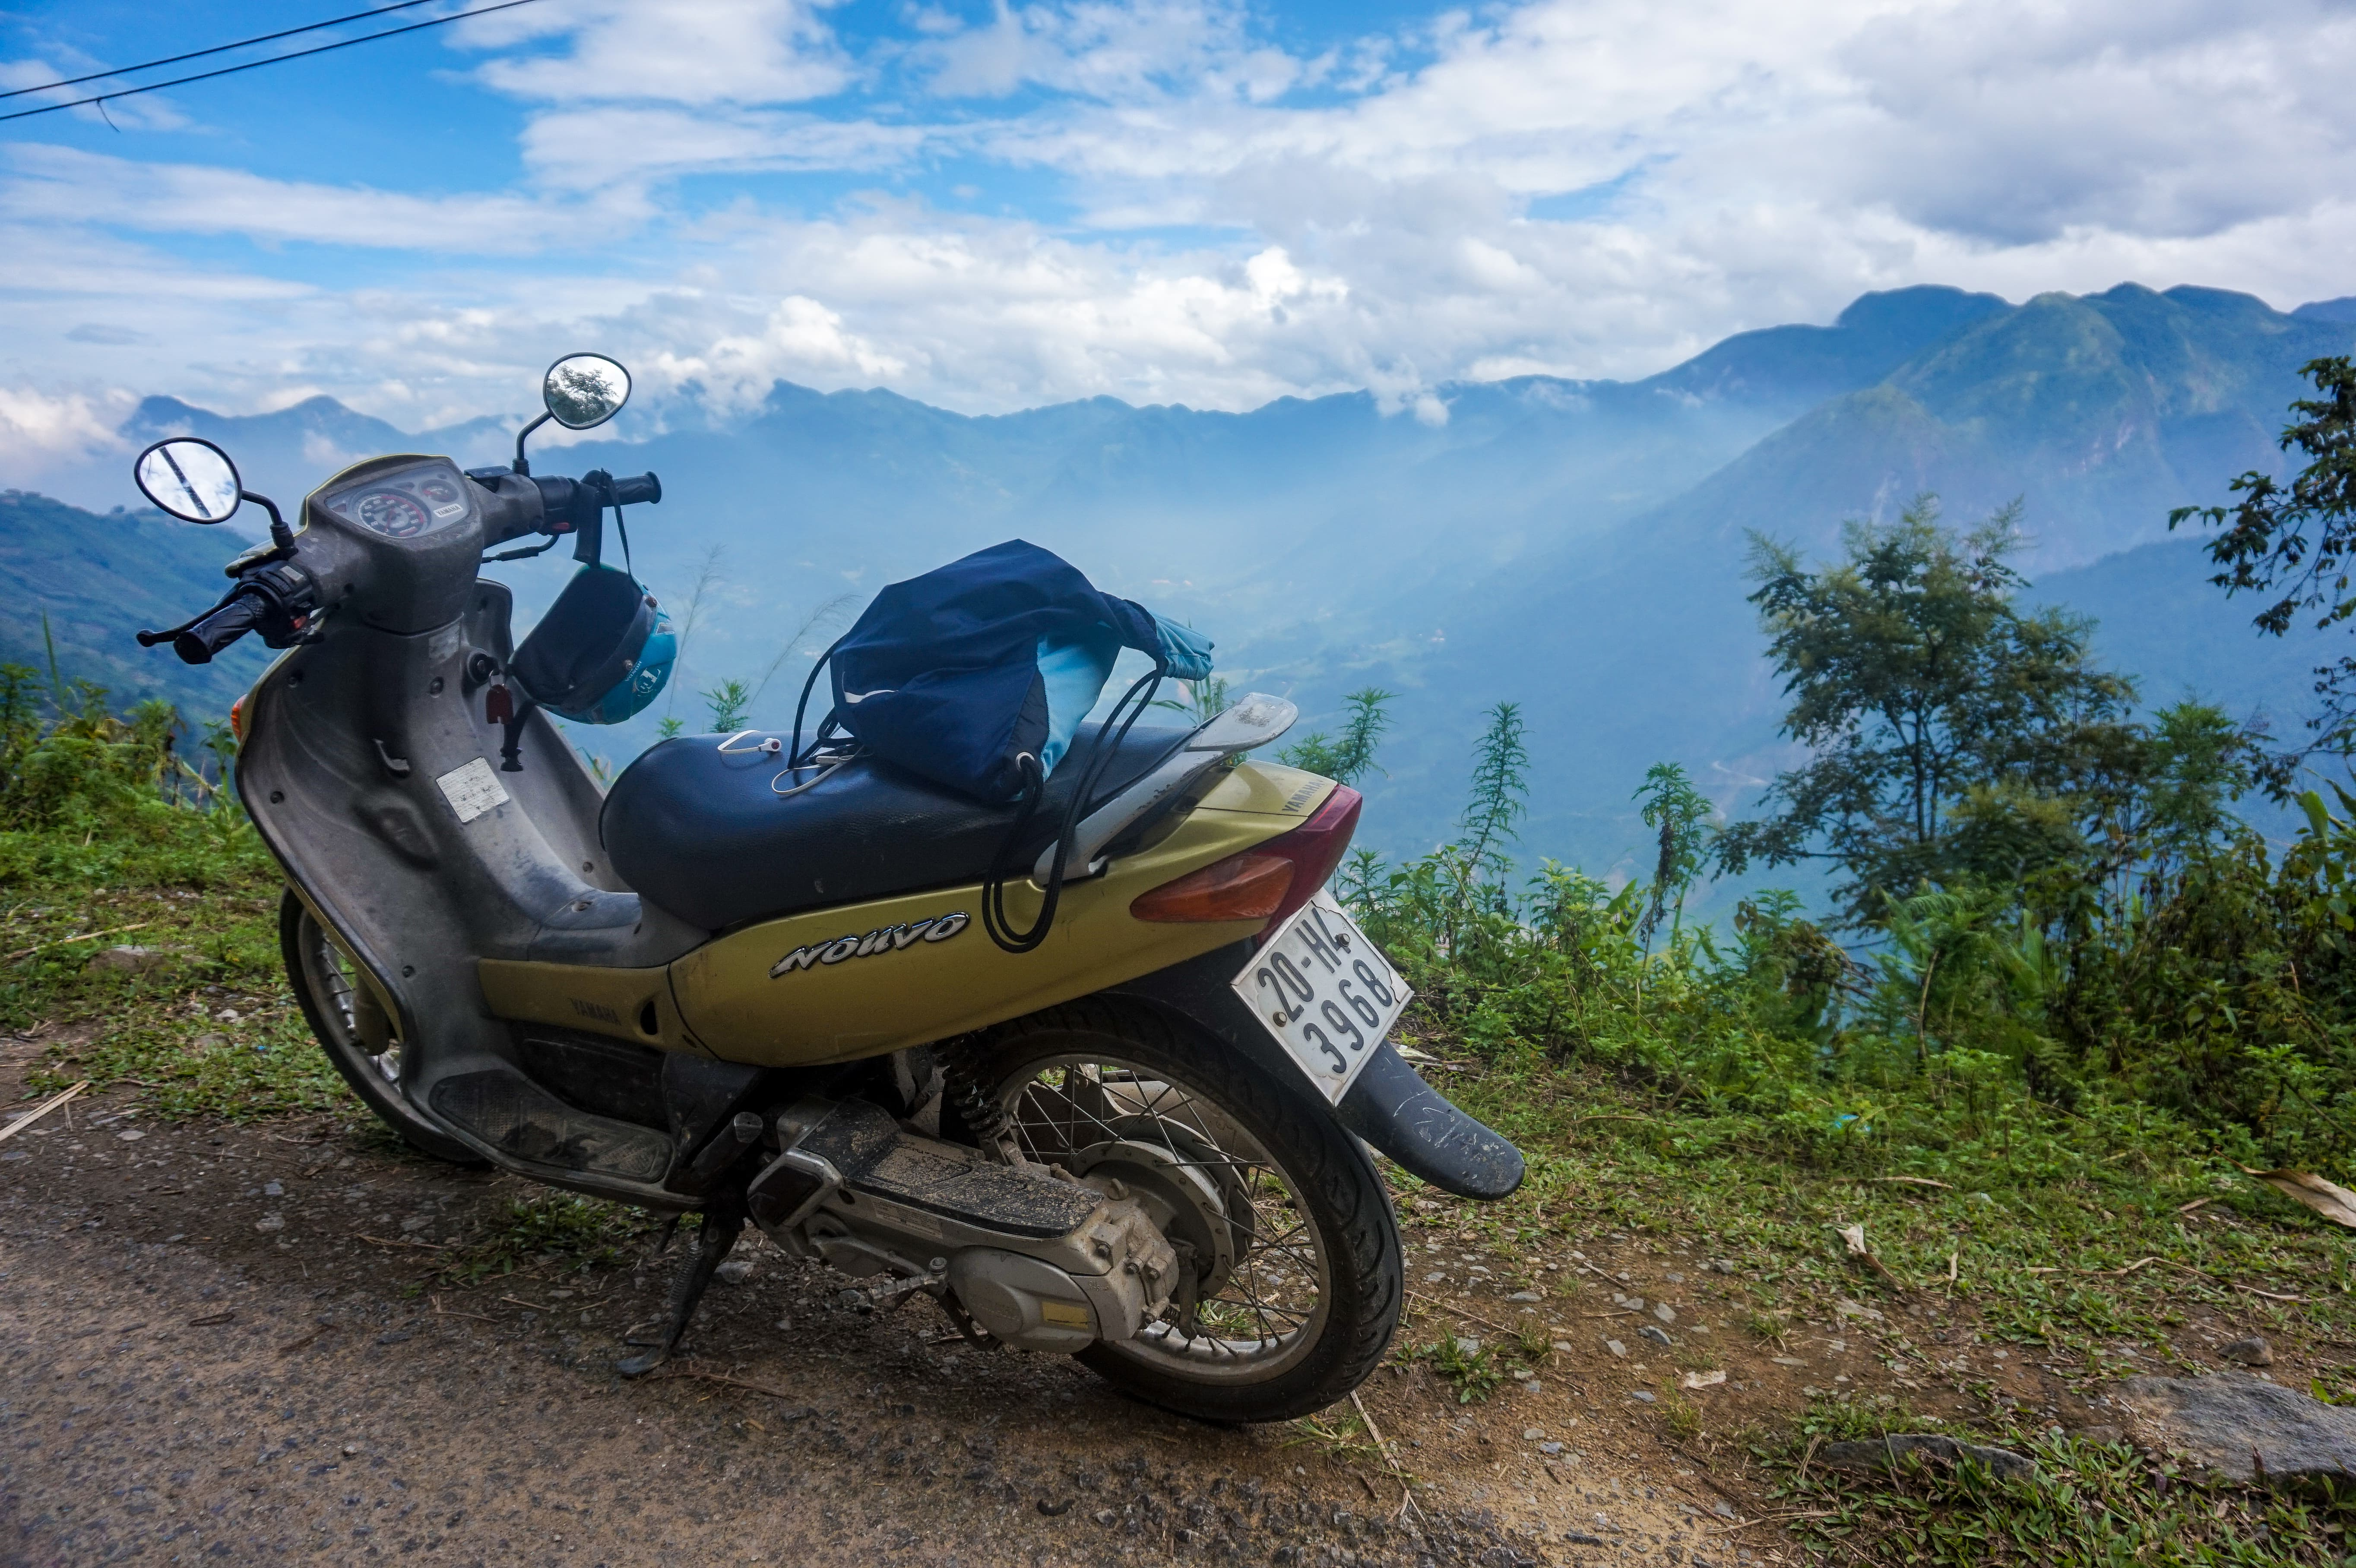 Motorbike Riding • 16 Remarkably Useful Things to Know Before Traveling to Vietnam | The Wanderful Me